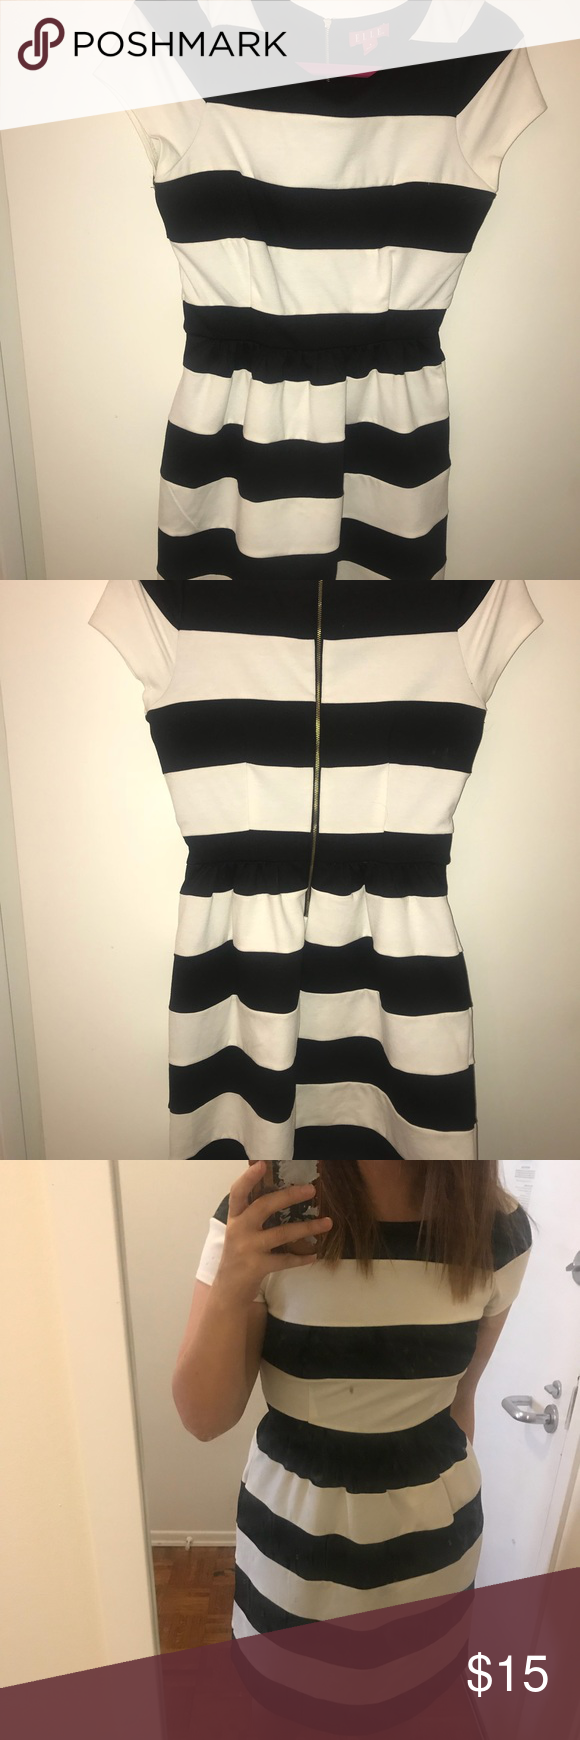 Dress customer support and delivery